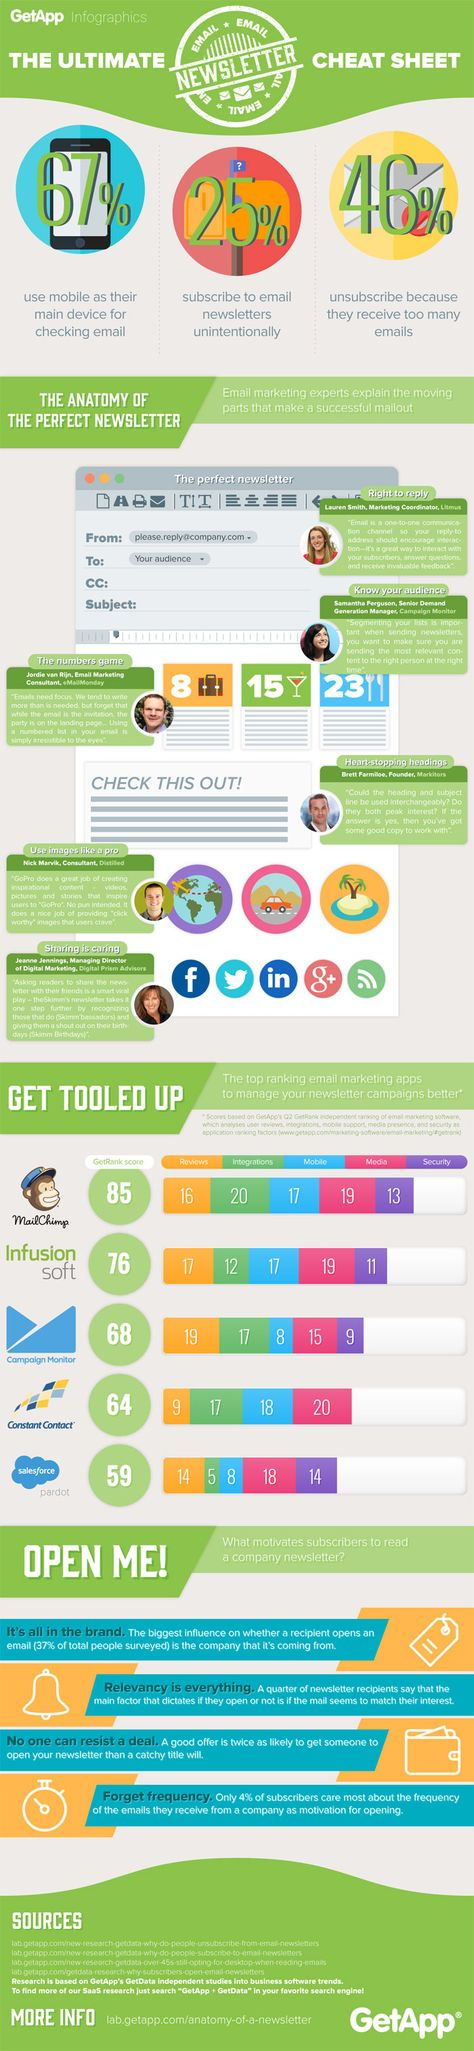 The Ultimate Cheat Sheet for Email Marketing [Infographic]